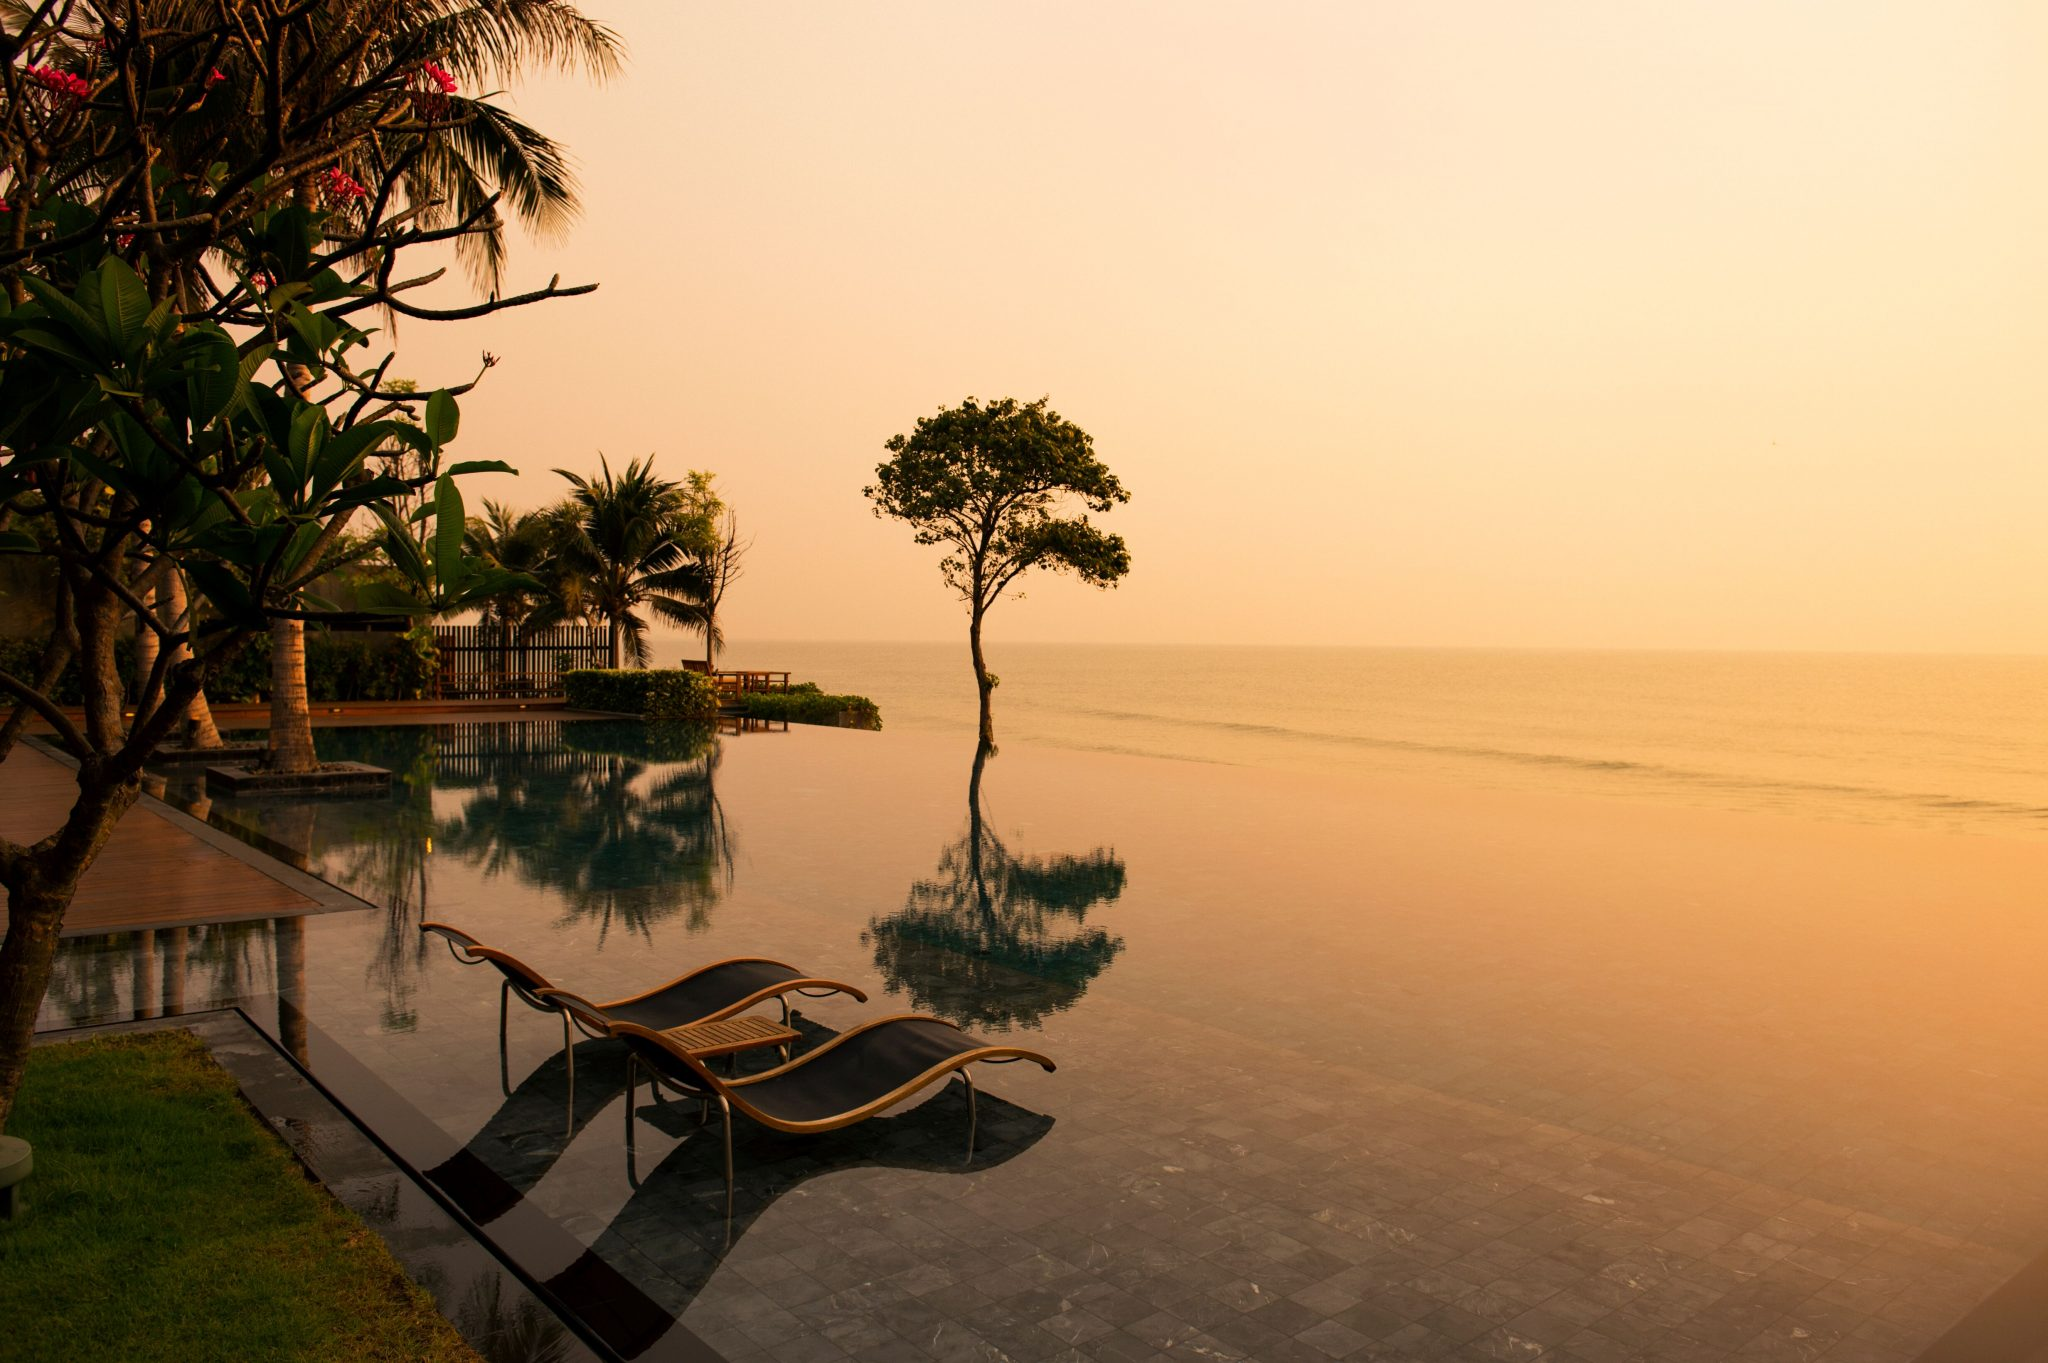 Tis' the season for tropical Thai escapes